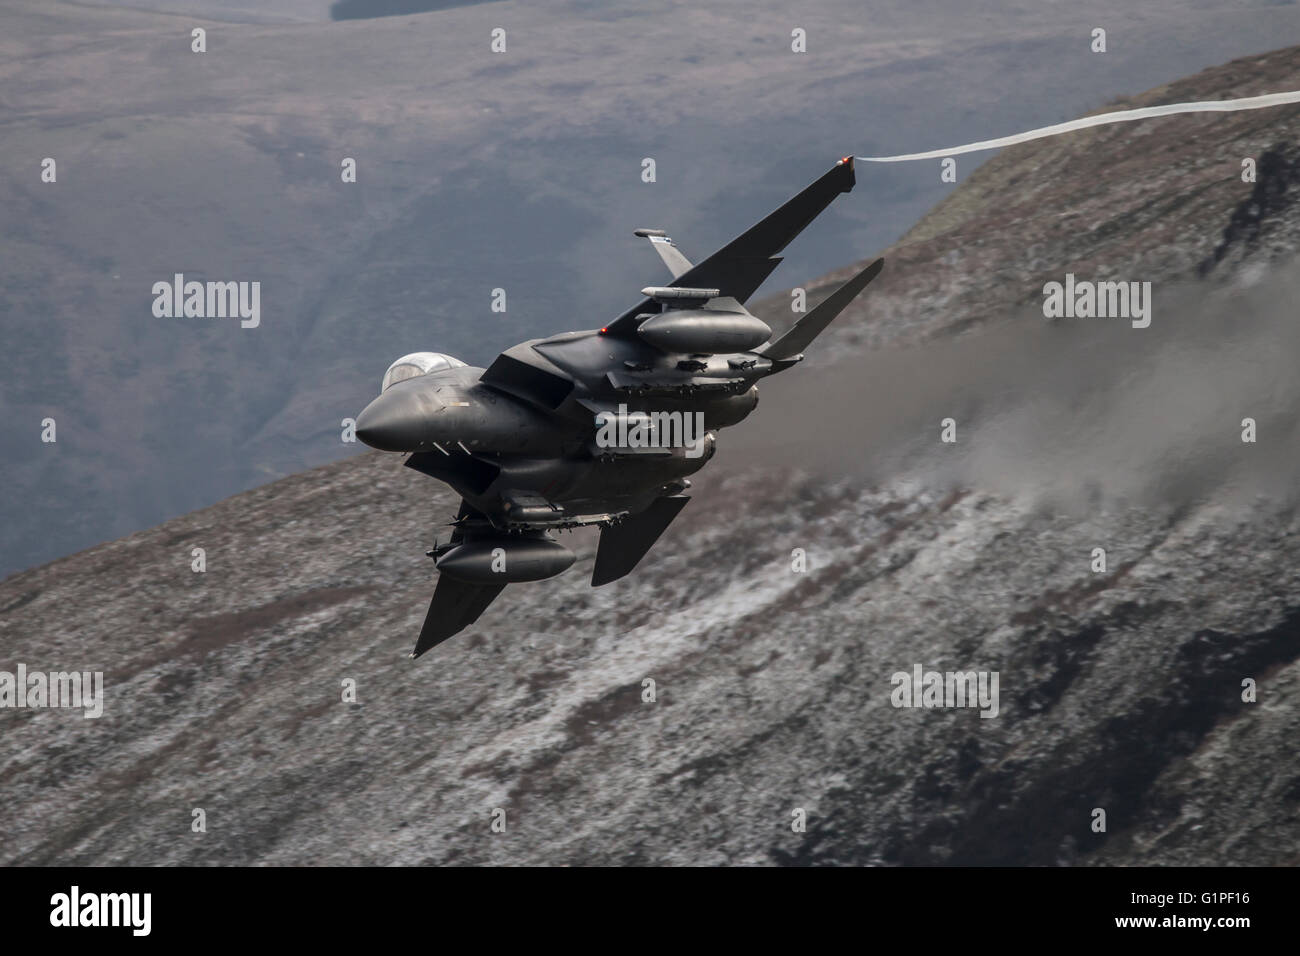 USAF F-15 Eagle in the Mach loop, Wales Stock Photo